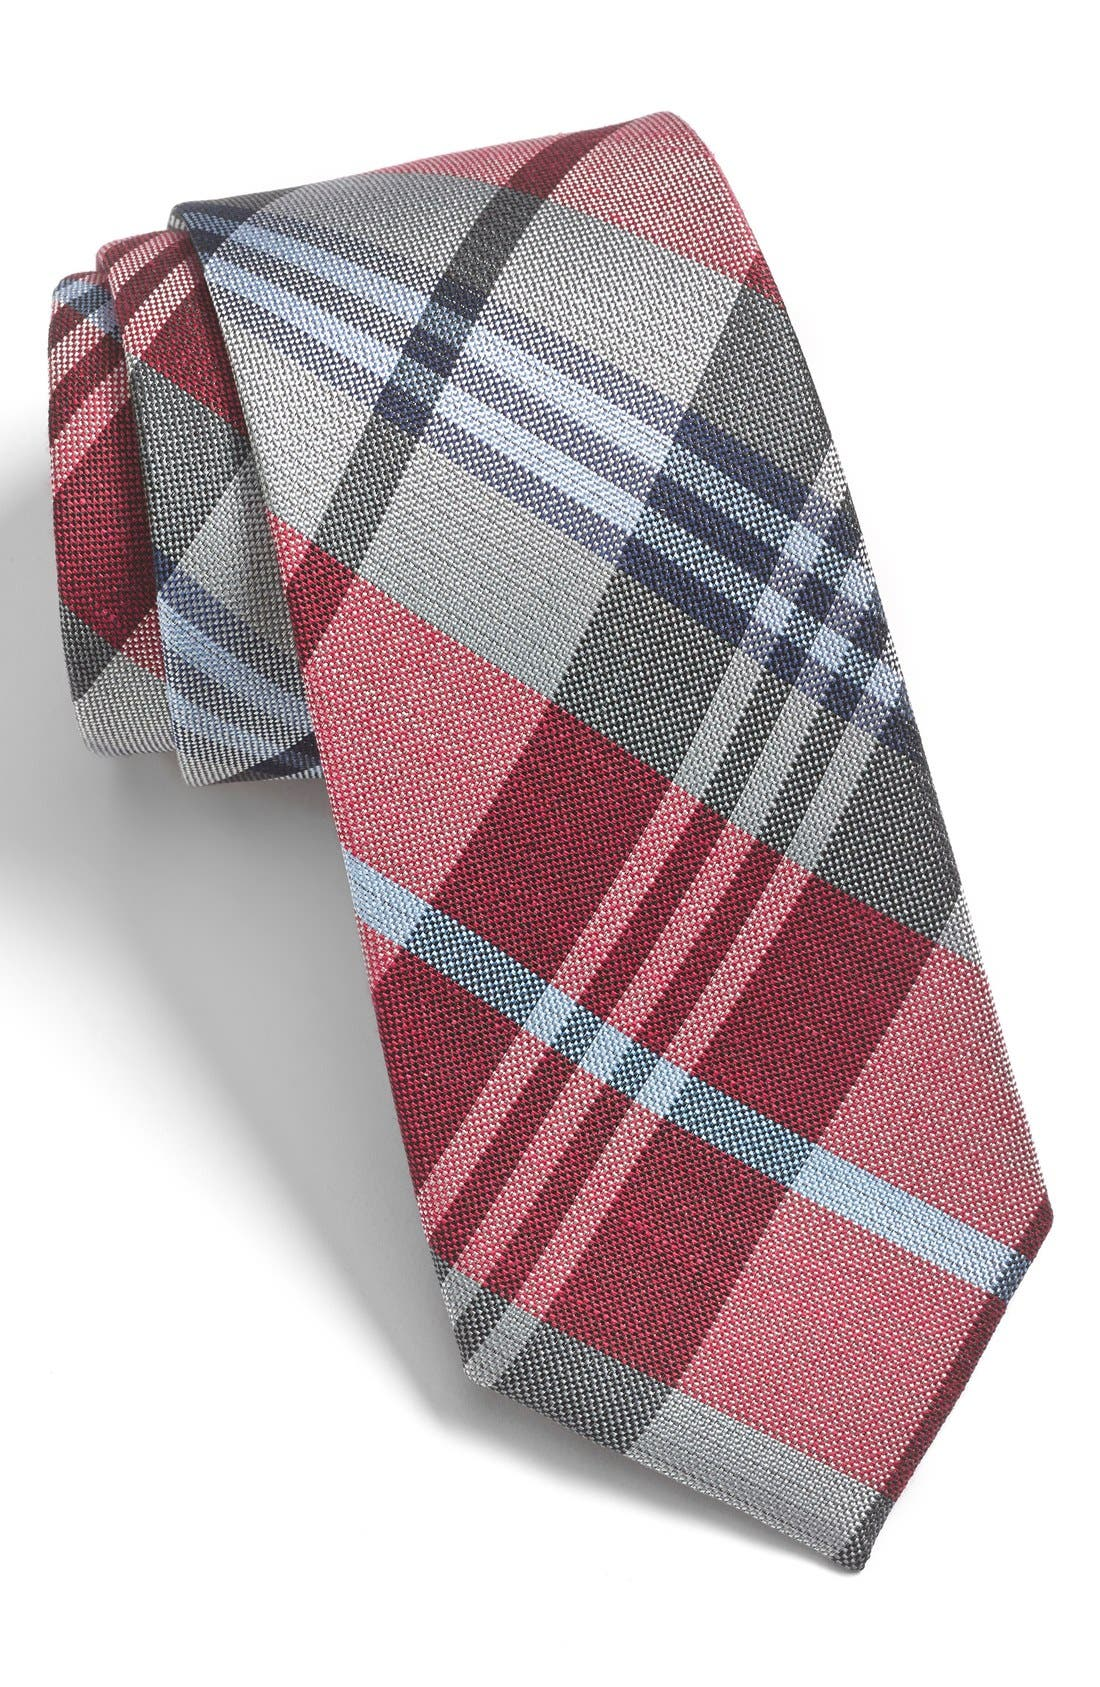 Alternate Image 1 Selected - The Tie Bar 'Crystal Wave' Silk & Linen Plaid Tie (Online Only)